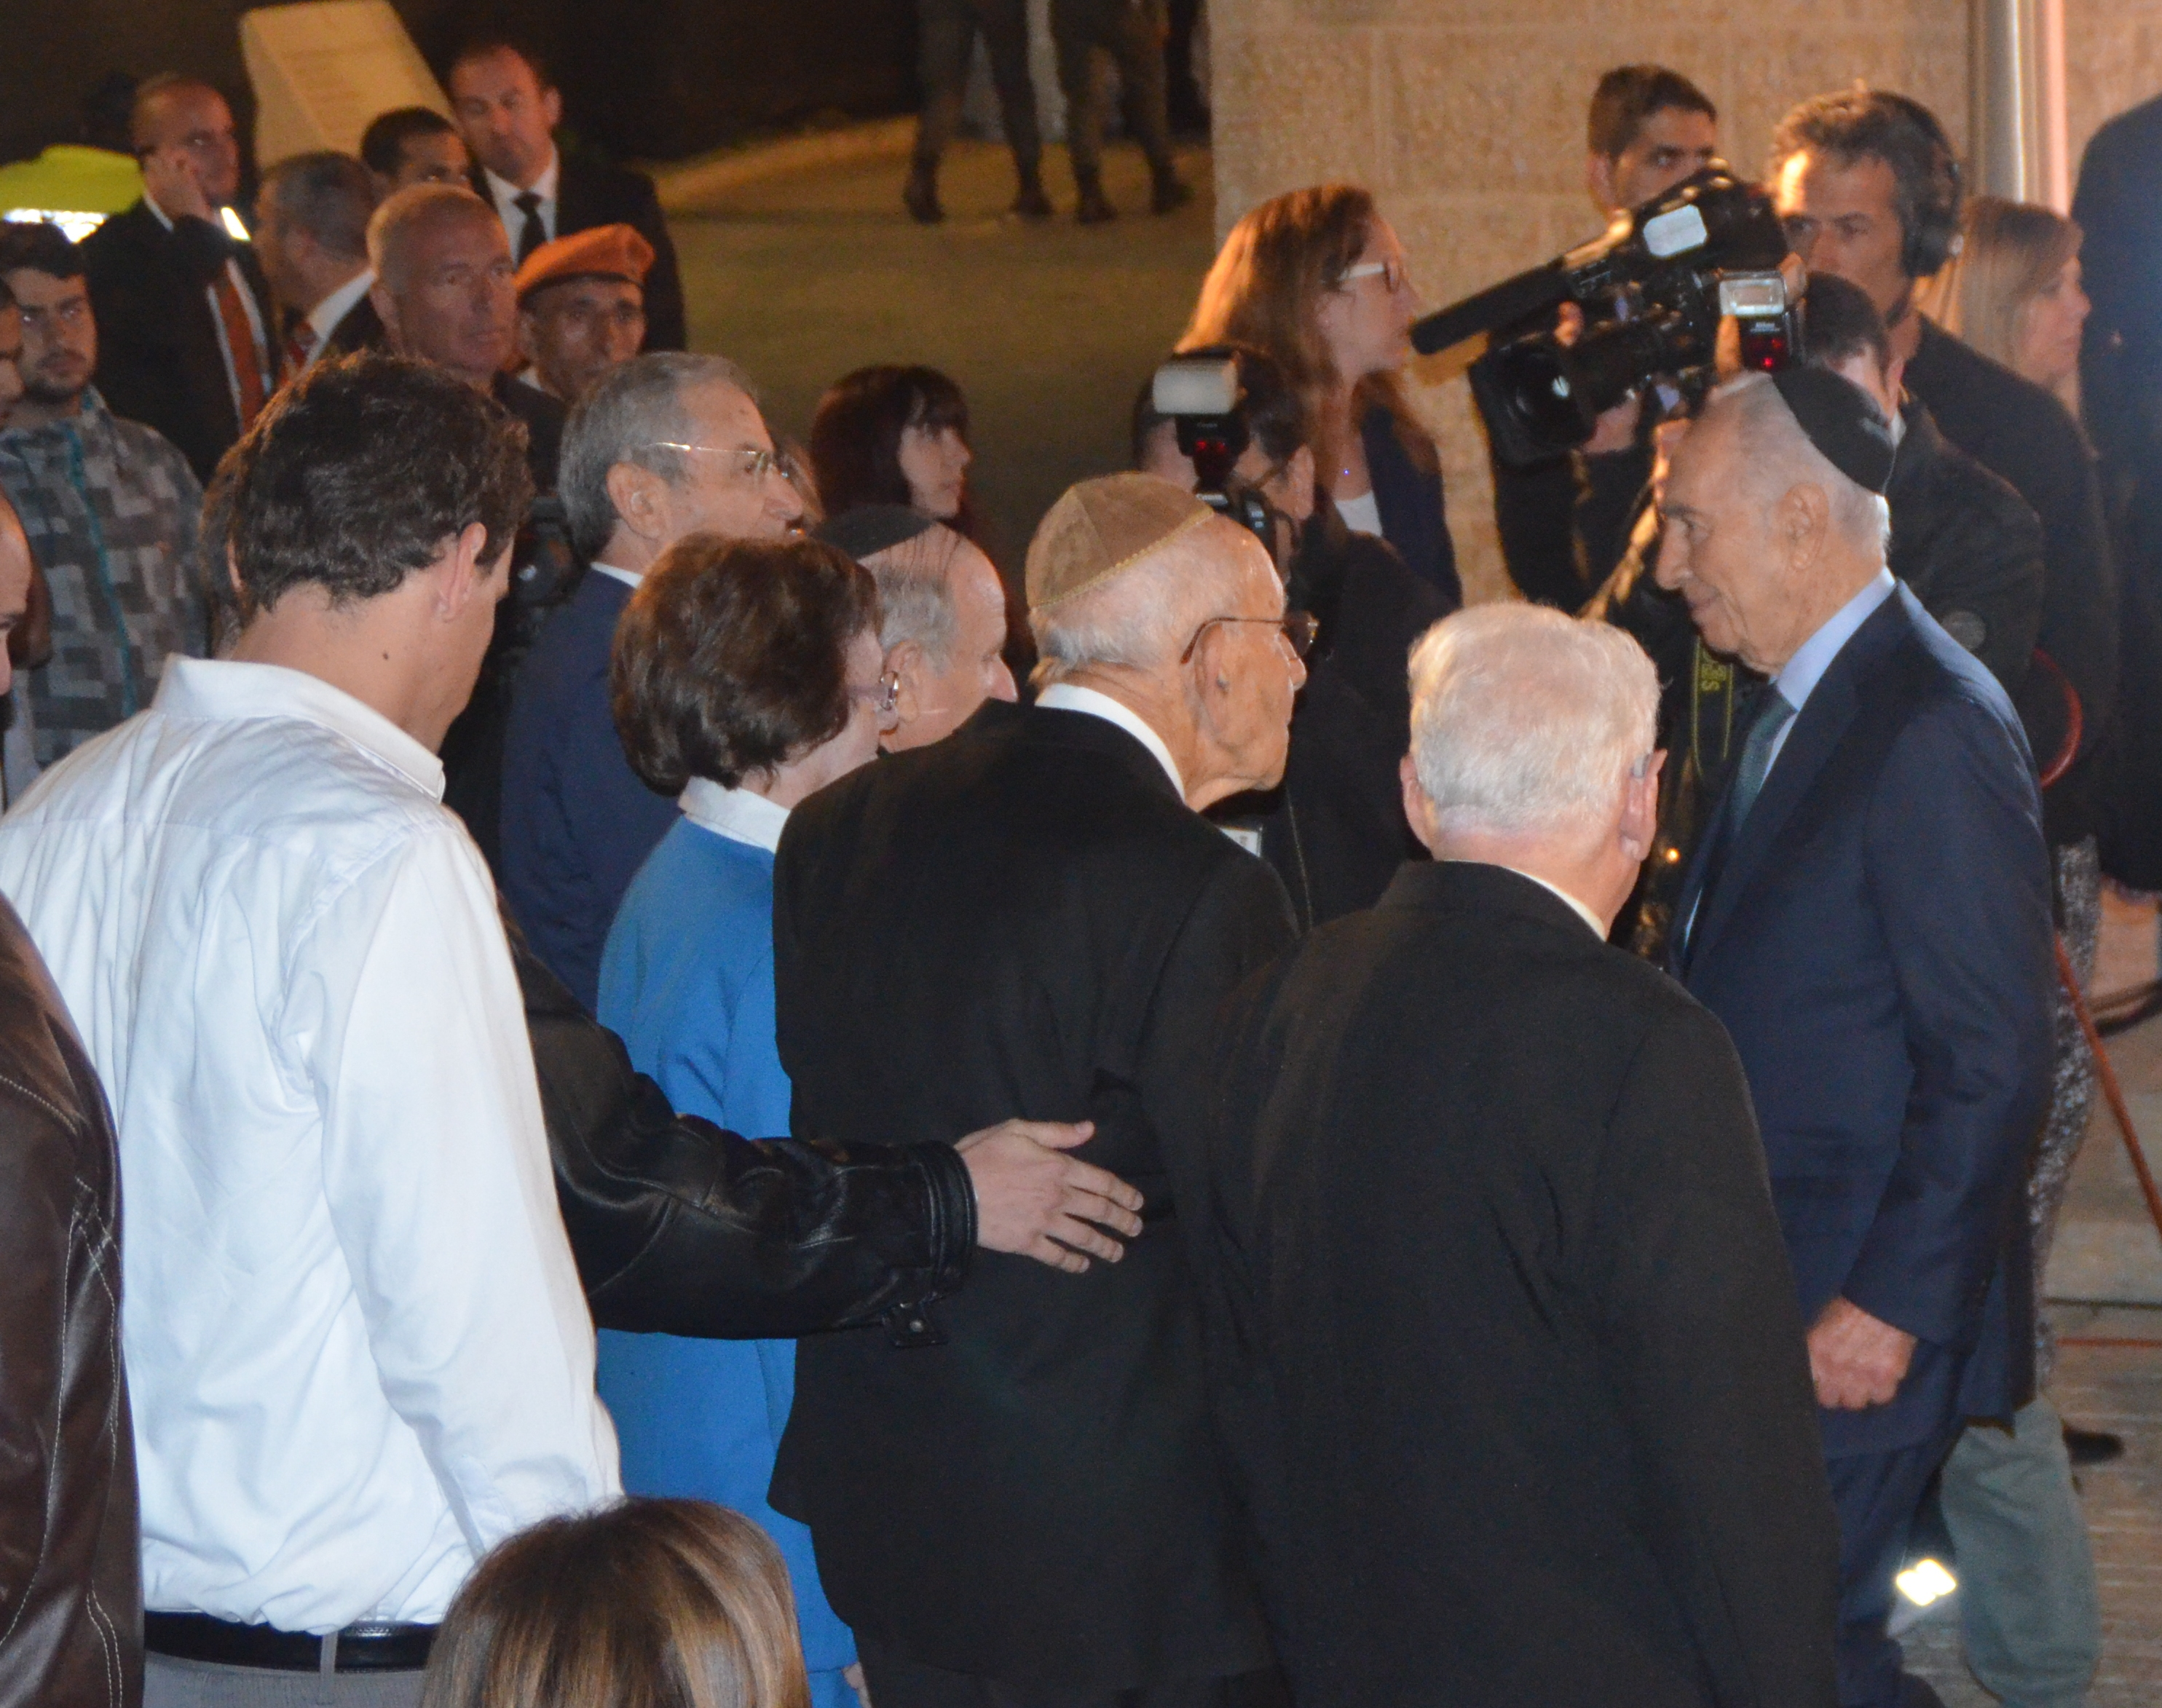 image Shimon Peres with crowd, photo Peres at YadVashem, picture President shaking hands